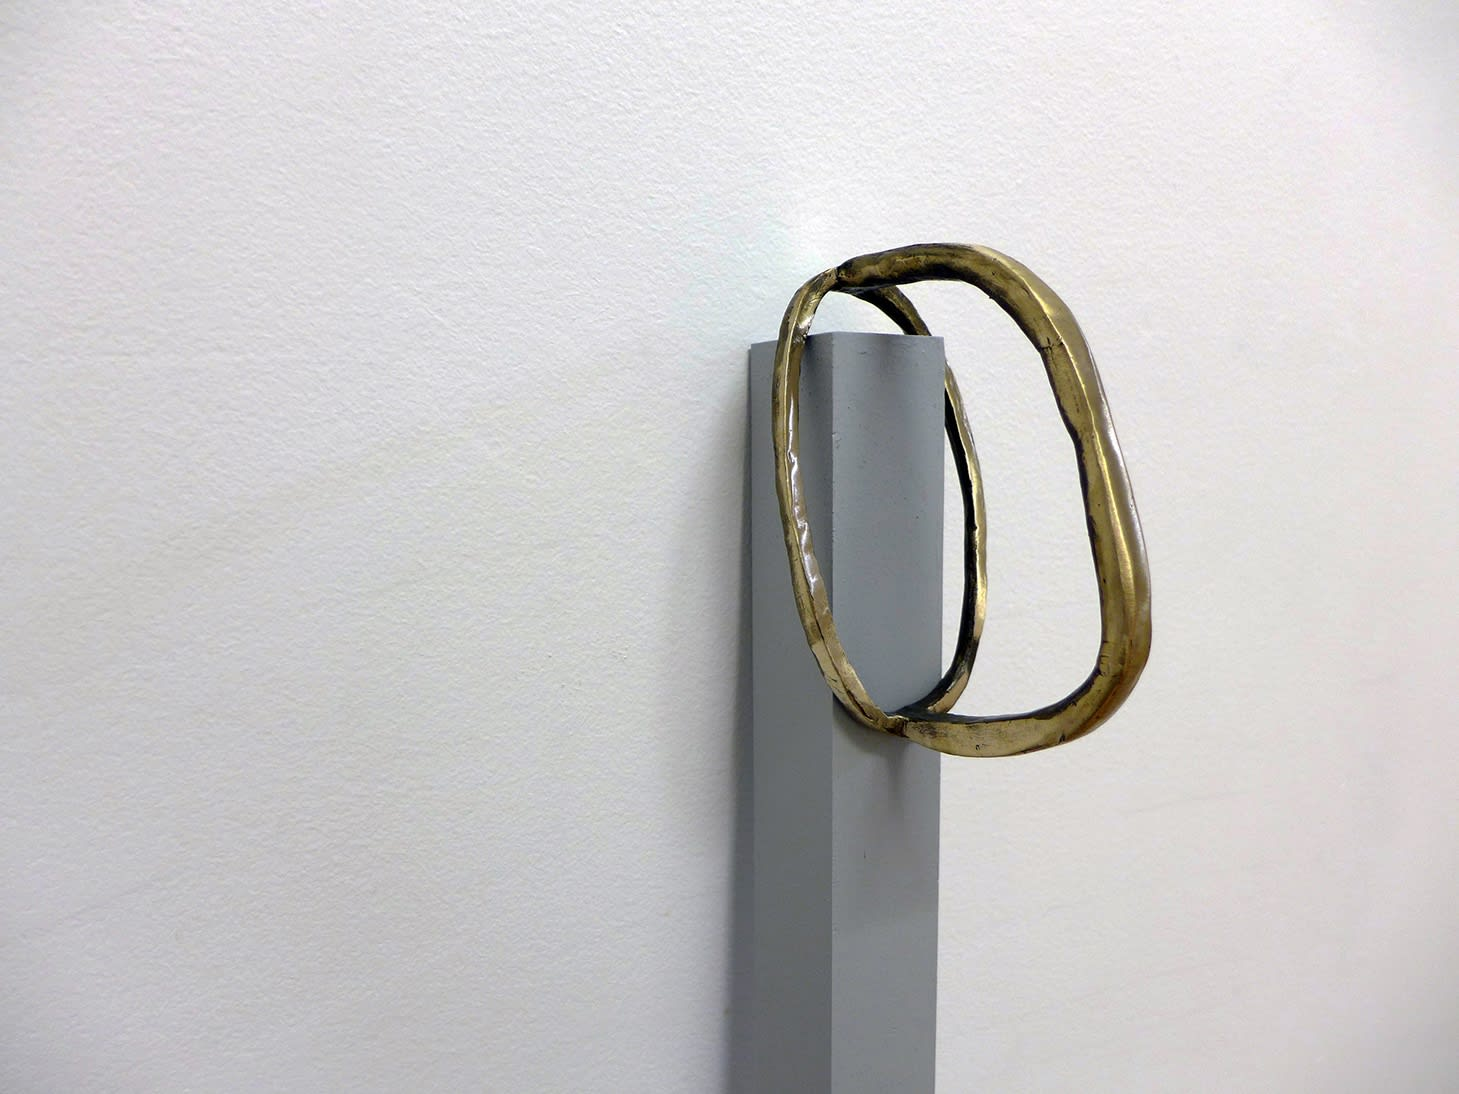 Bianca Hester, performance object #14, 2014